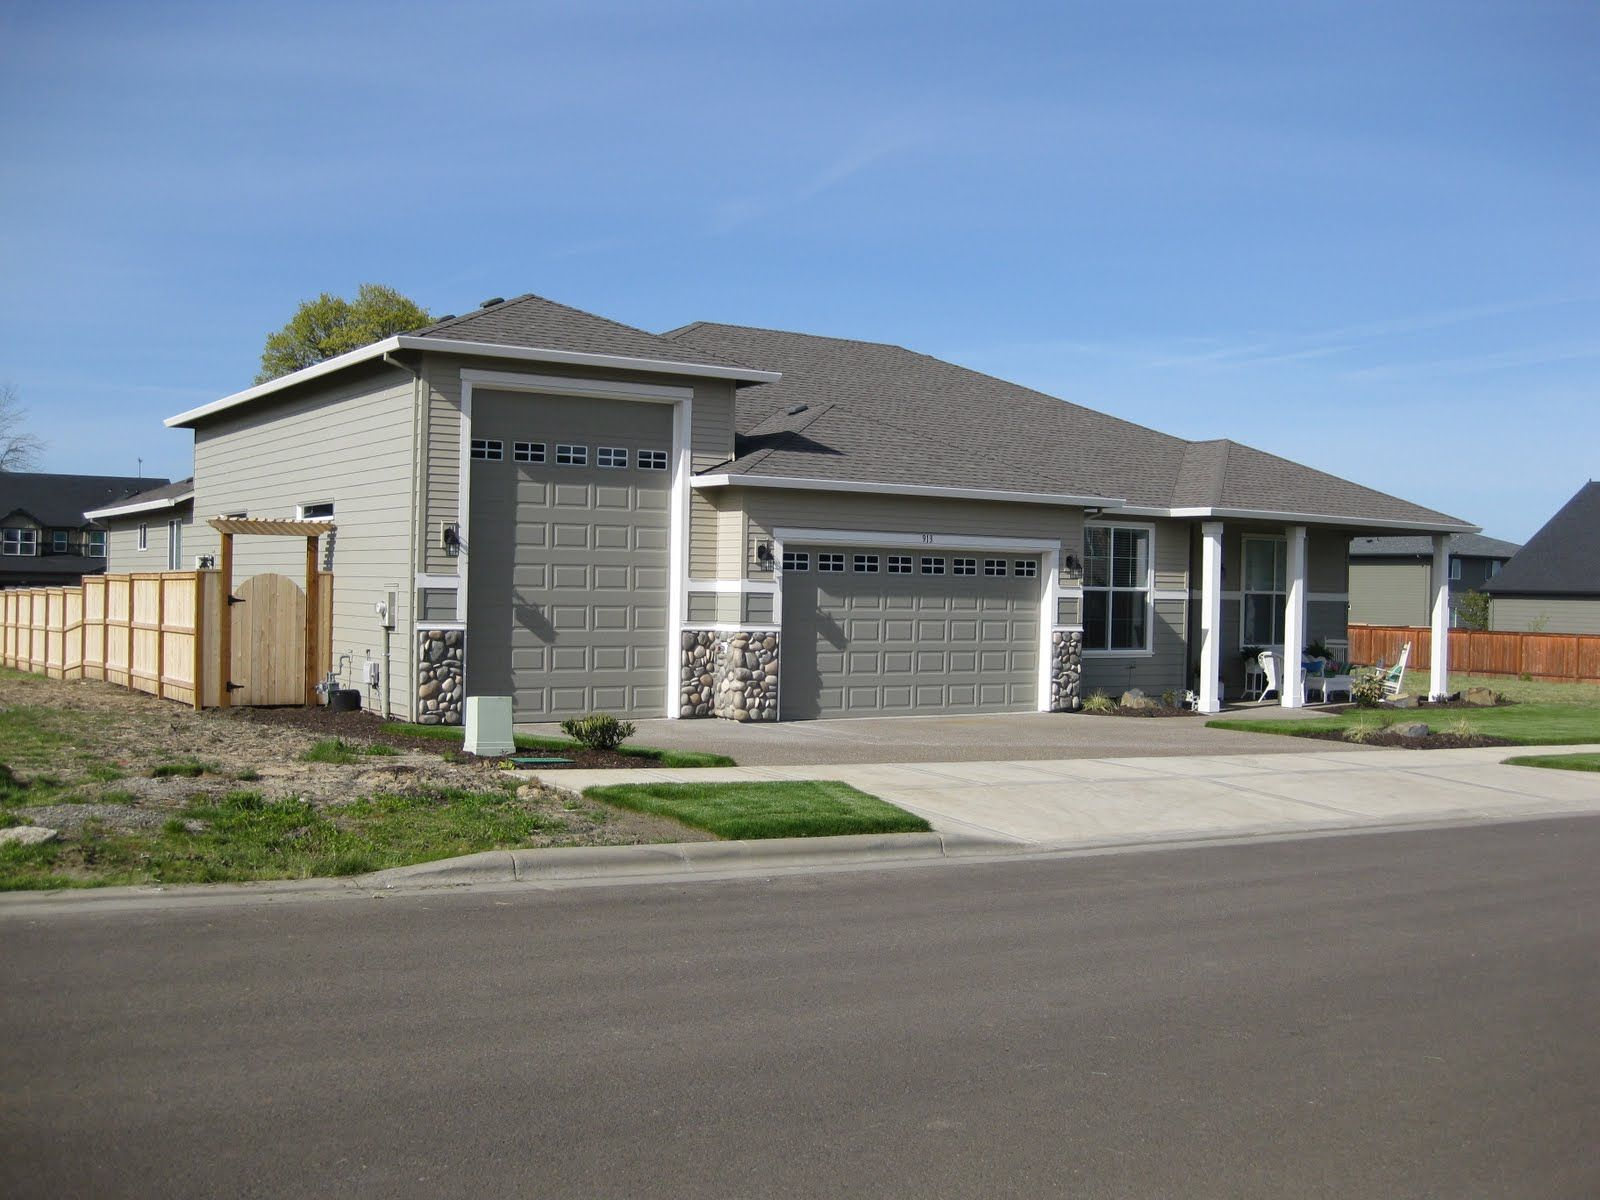 Awesome Rv Garage Homes Garage House Plans House Plans Garage